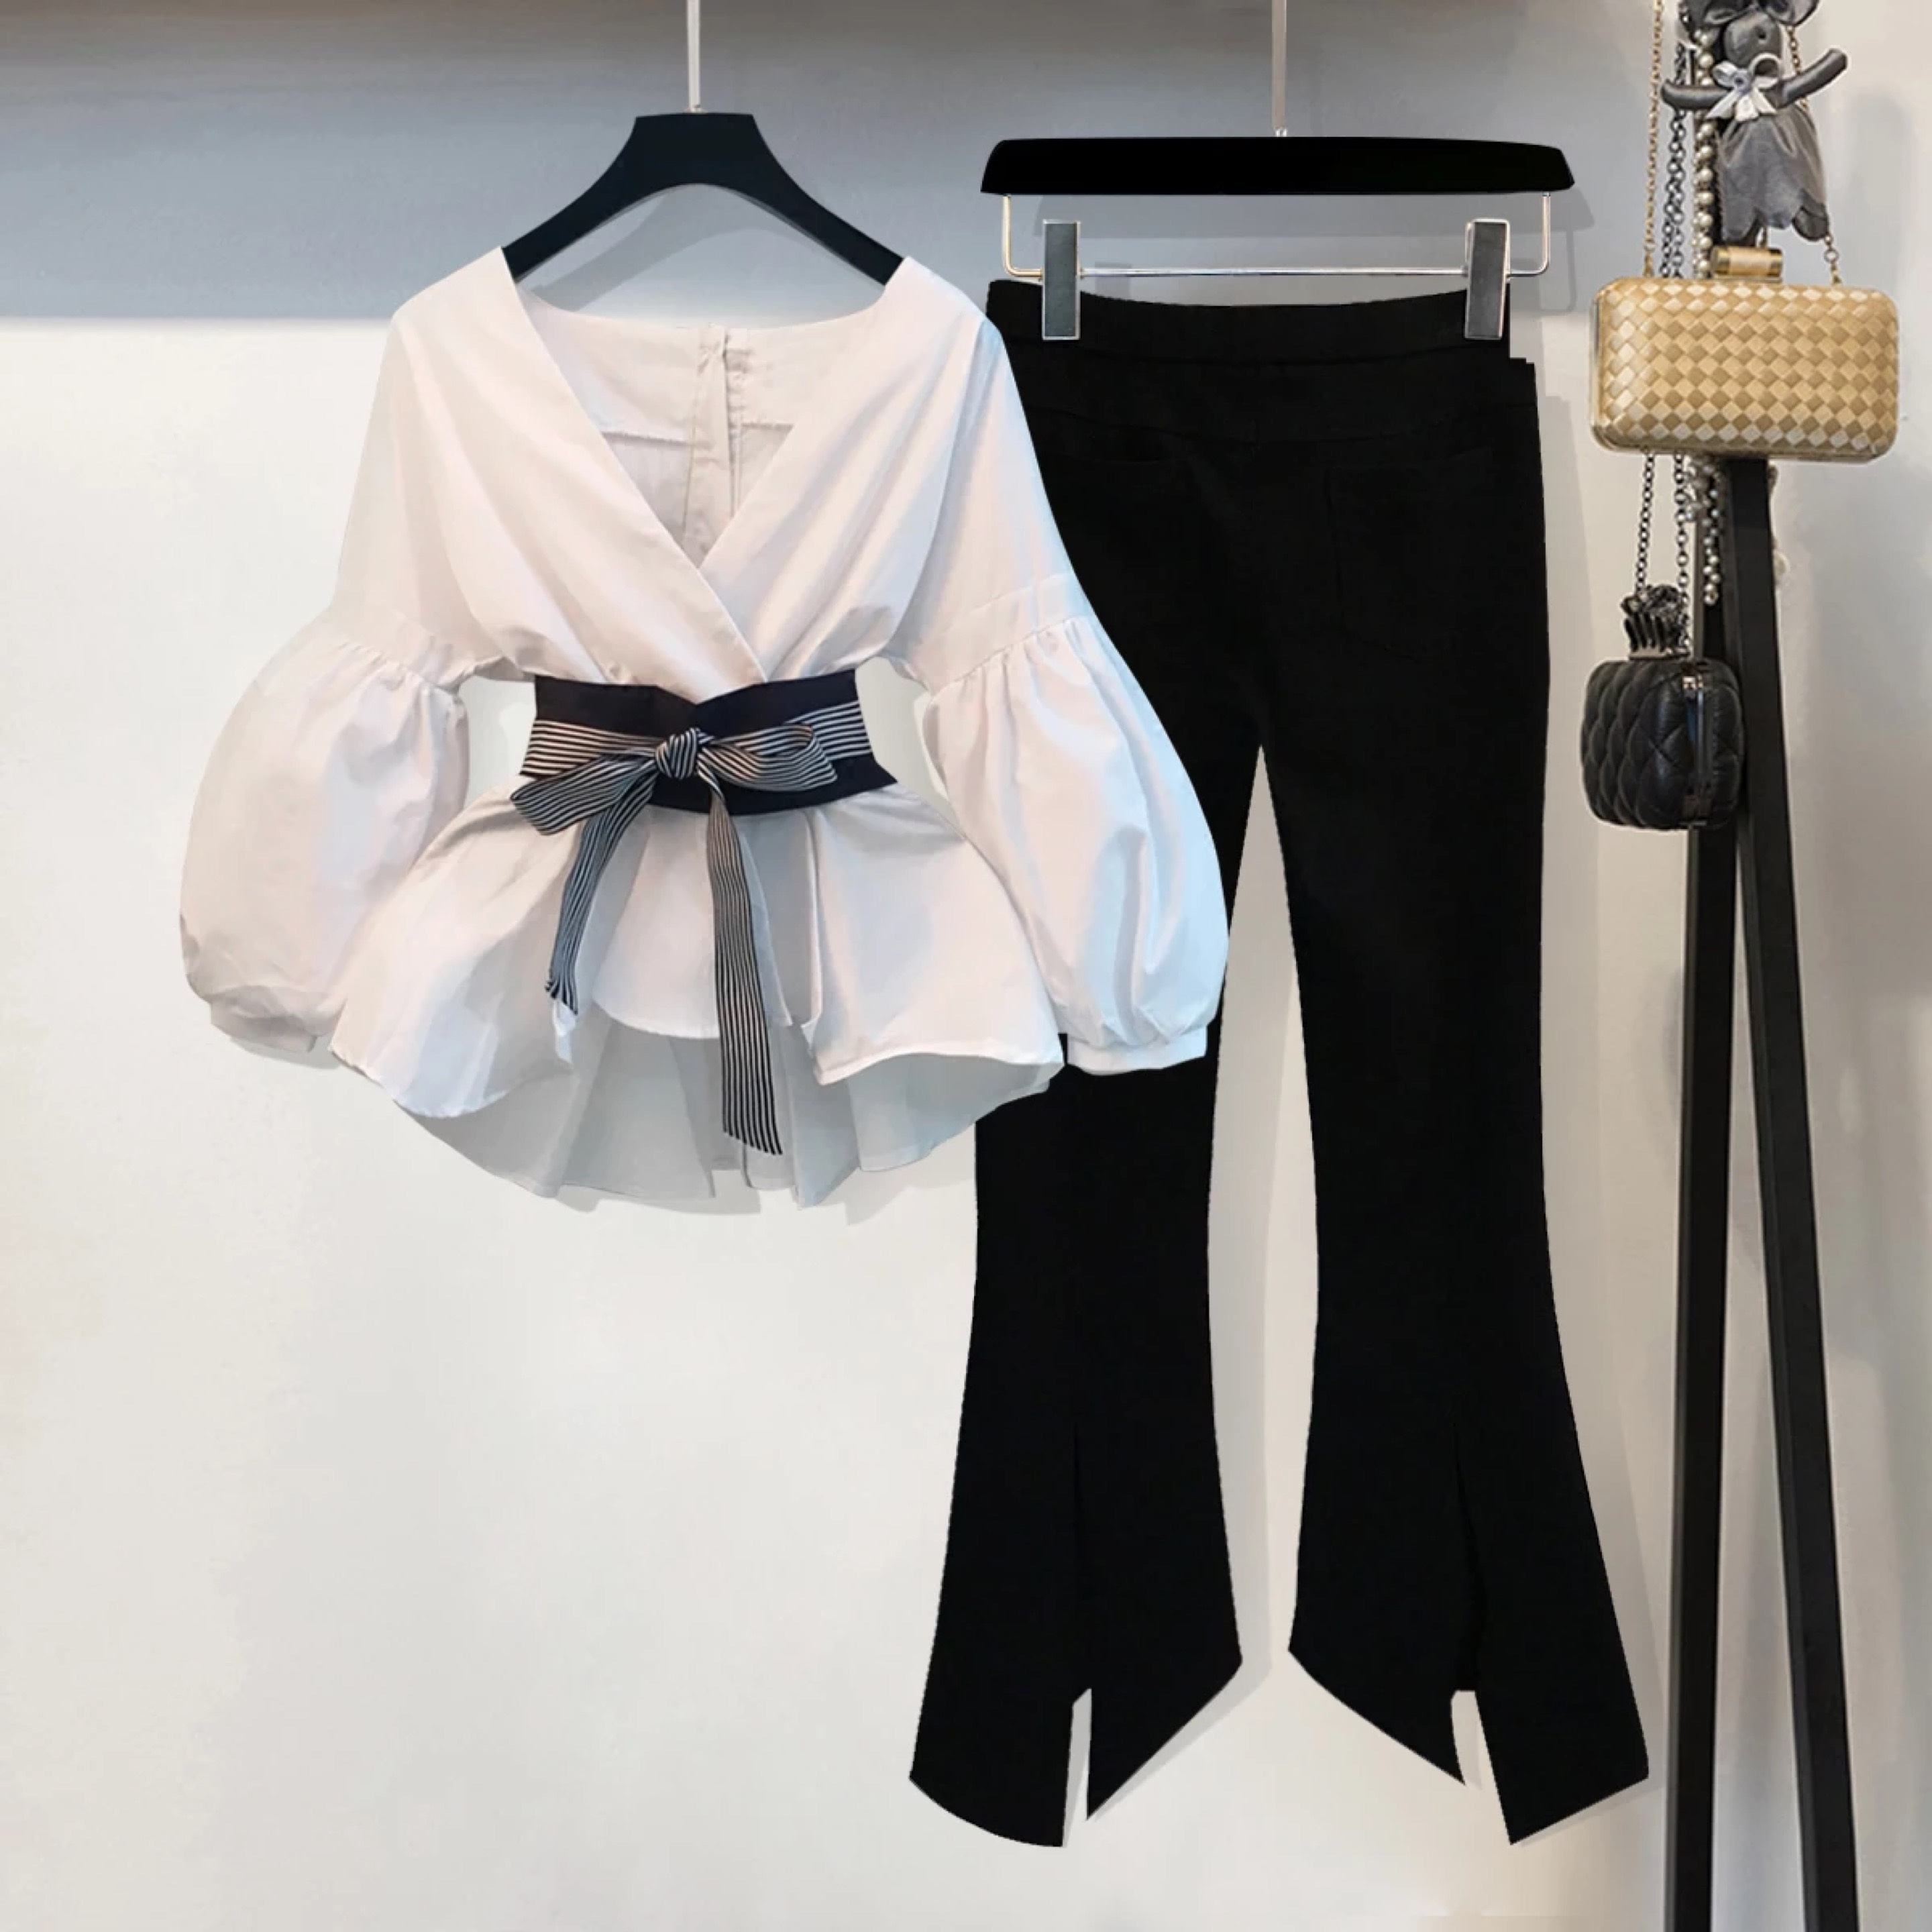 Fashion Spring Women 2 Pieces Set Long Sleeve Blouse Tops And Trousers Casual Office Lady Pants Suit Plus Size 4Xl Clothes Set